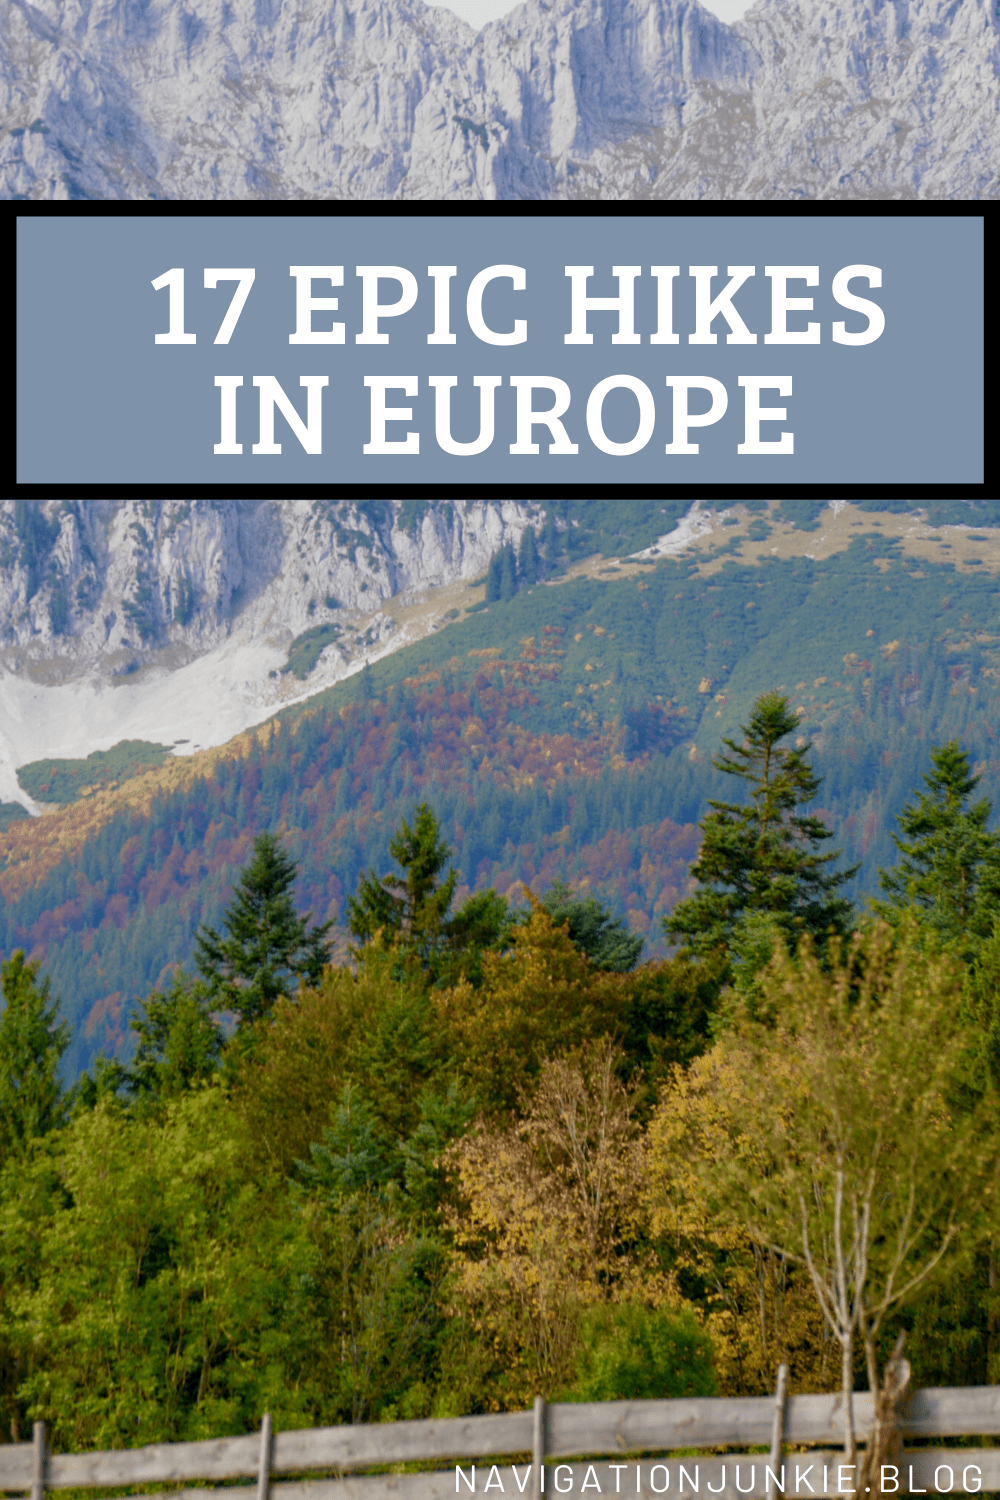 The most epic hikes in Europe that will lead you to stunning views and unique destinations.